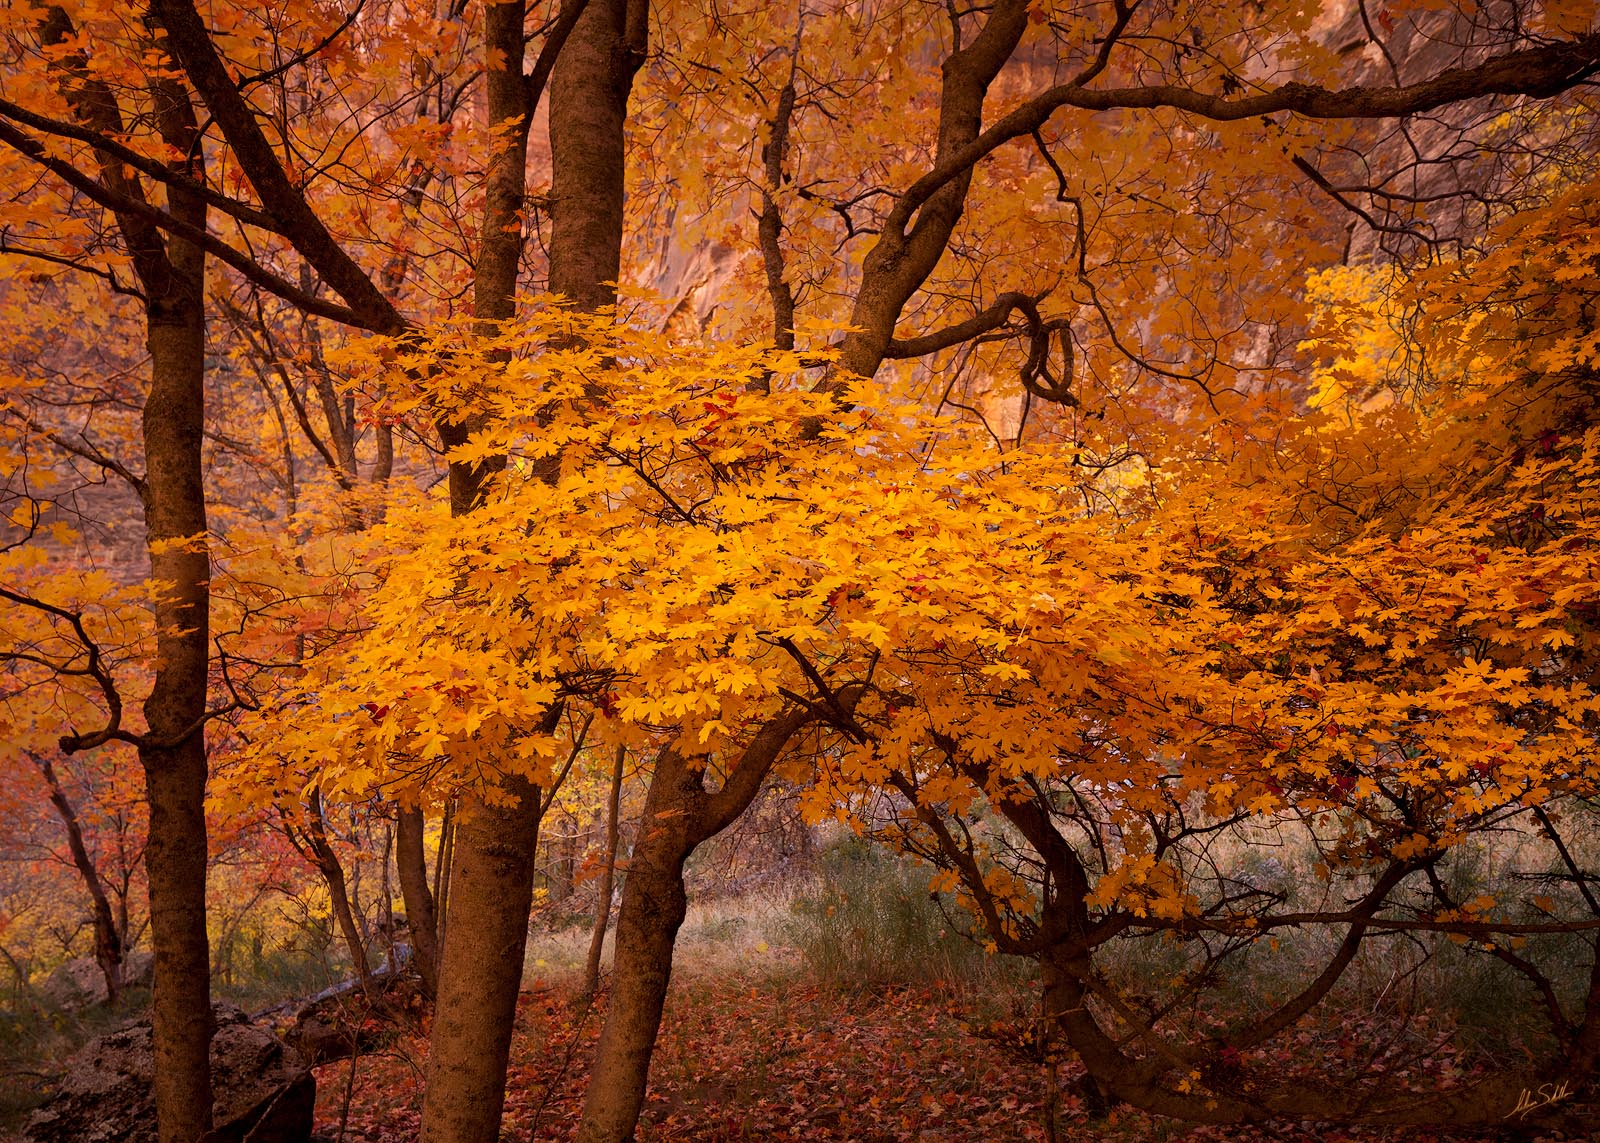 Autumn, Colorado Plateau, Fall, Fall Color, Maple Leaves, National Park, UT, Utah, Zion, Zion National Park, photo